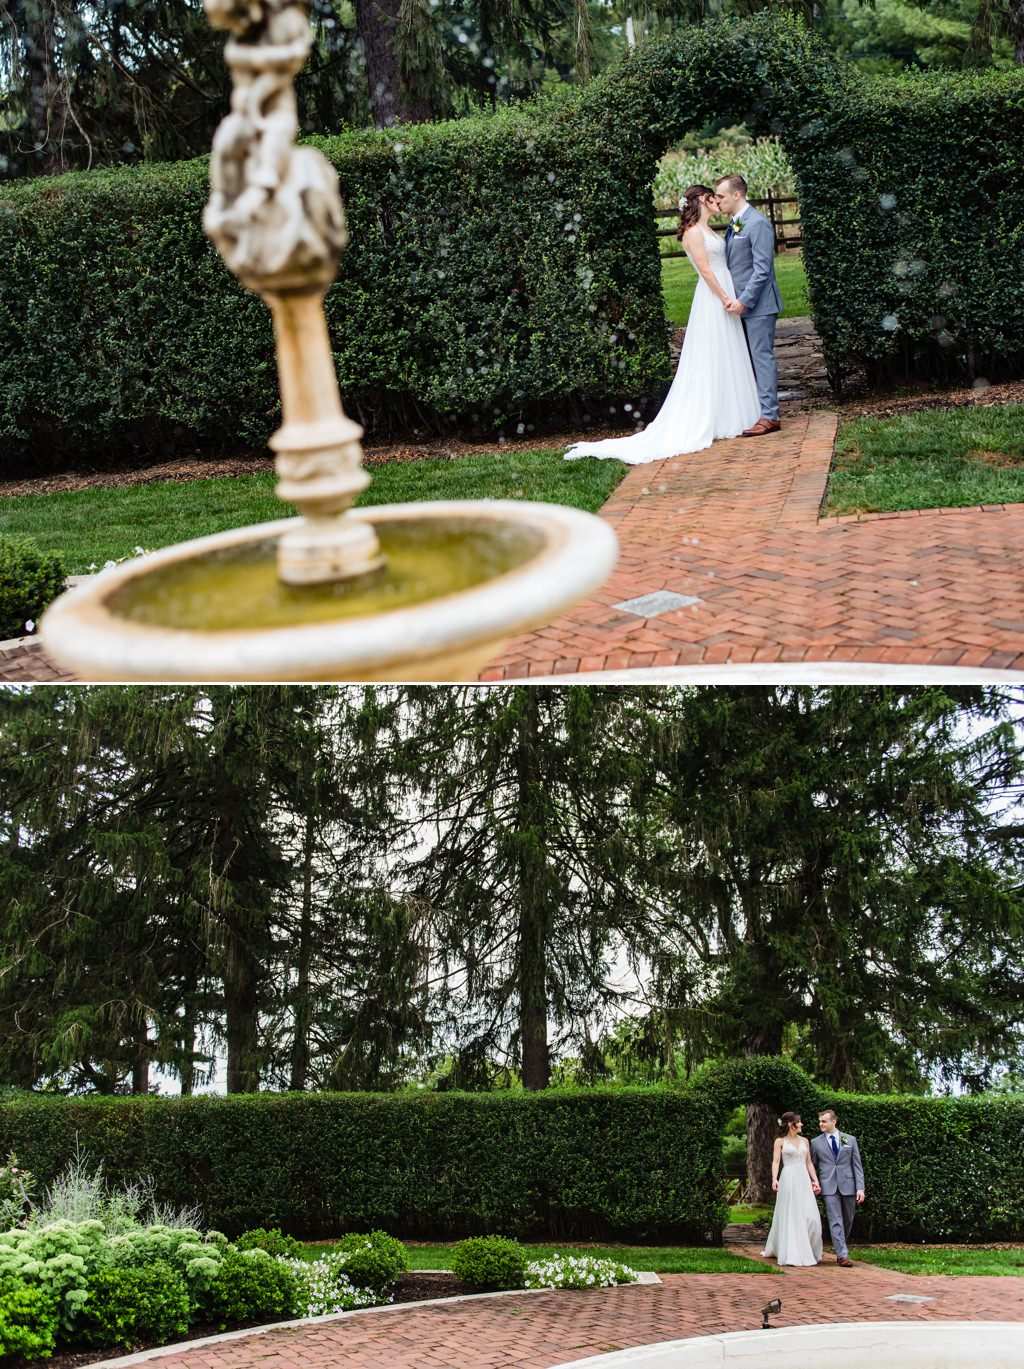 A bride and groom walking down the brick path at White Chimneys wedding venue